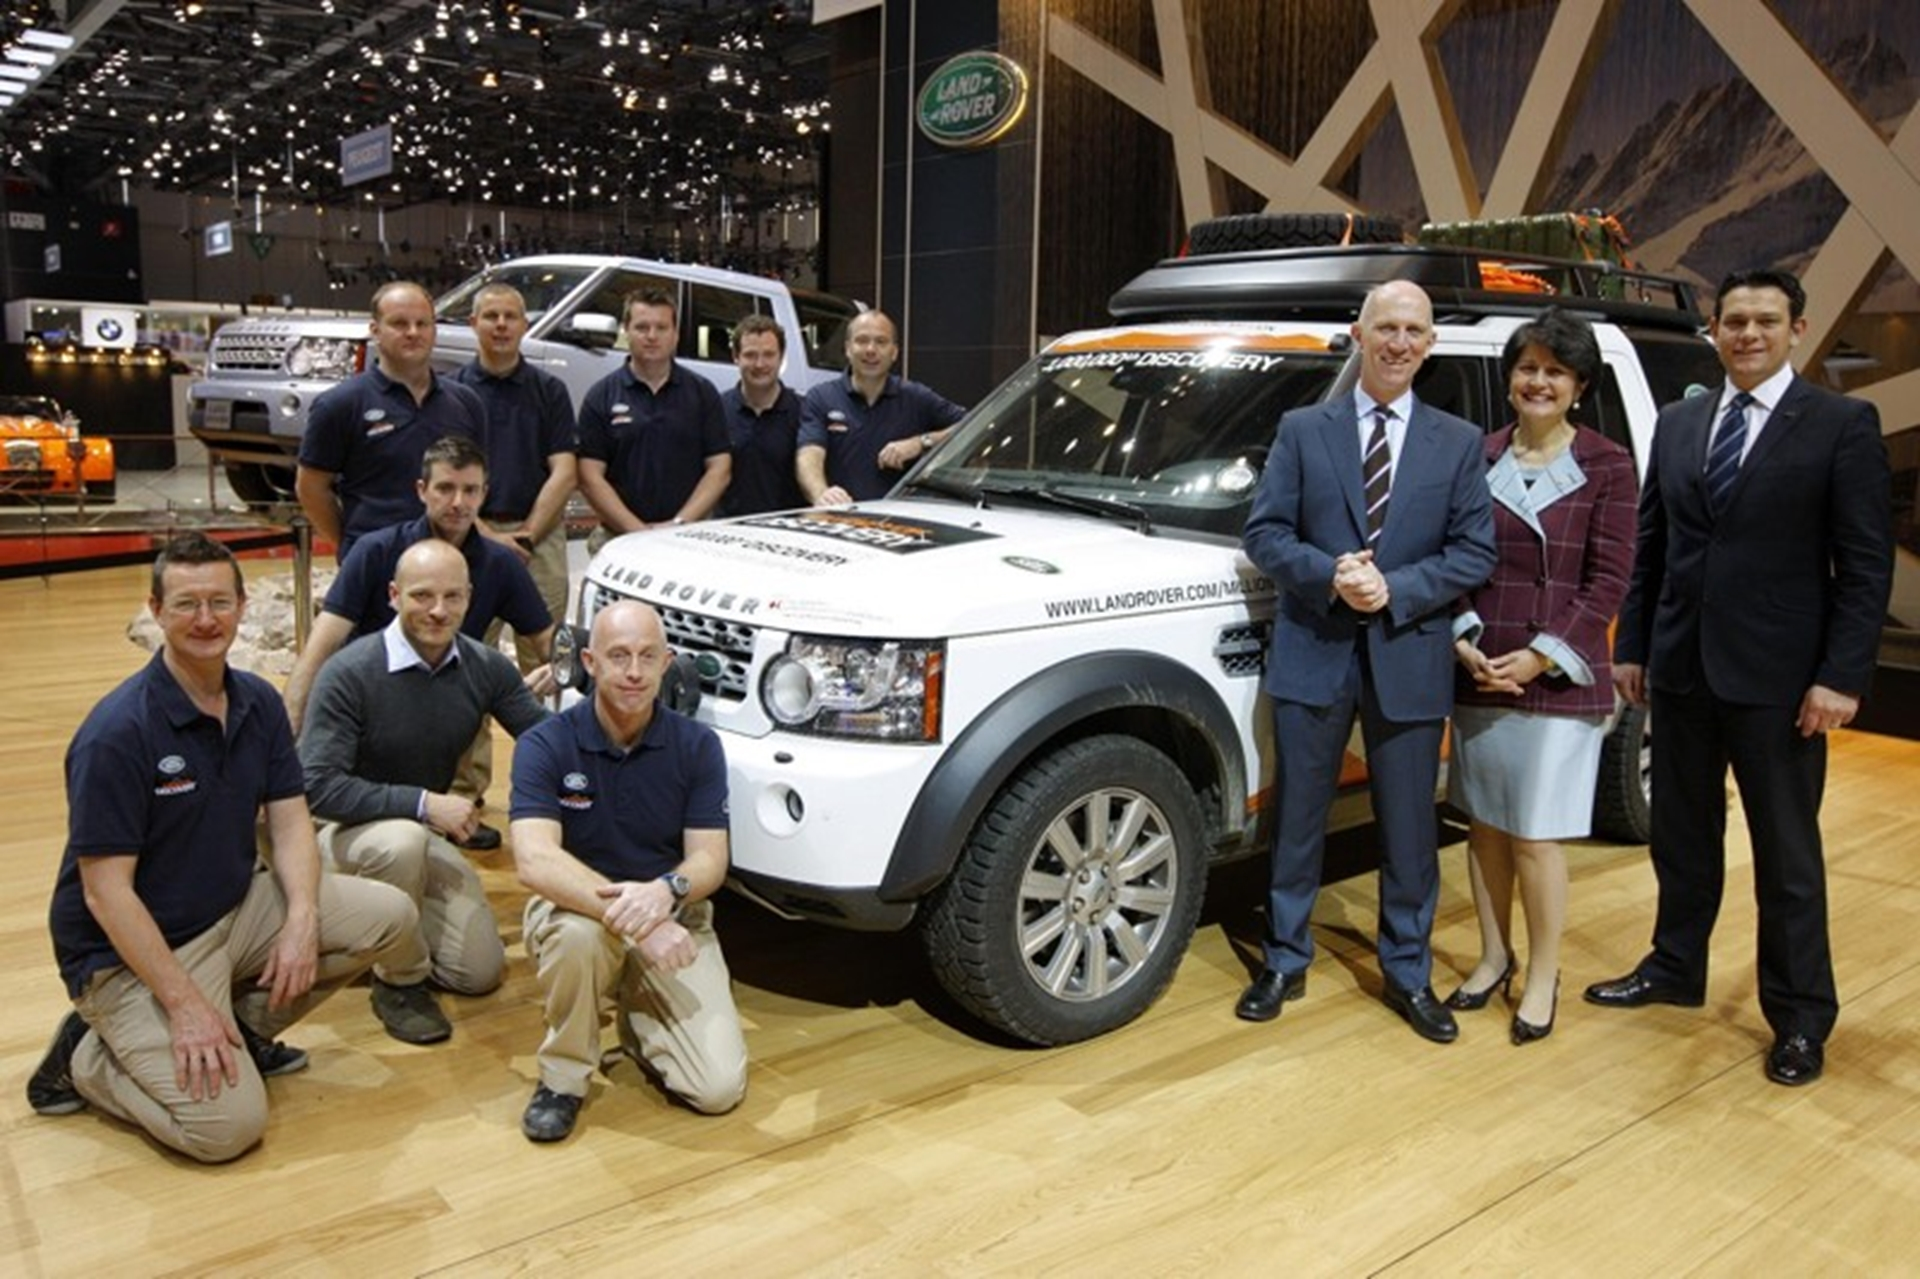 Land Rover Global Brand Extension Director